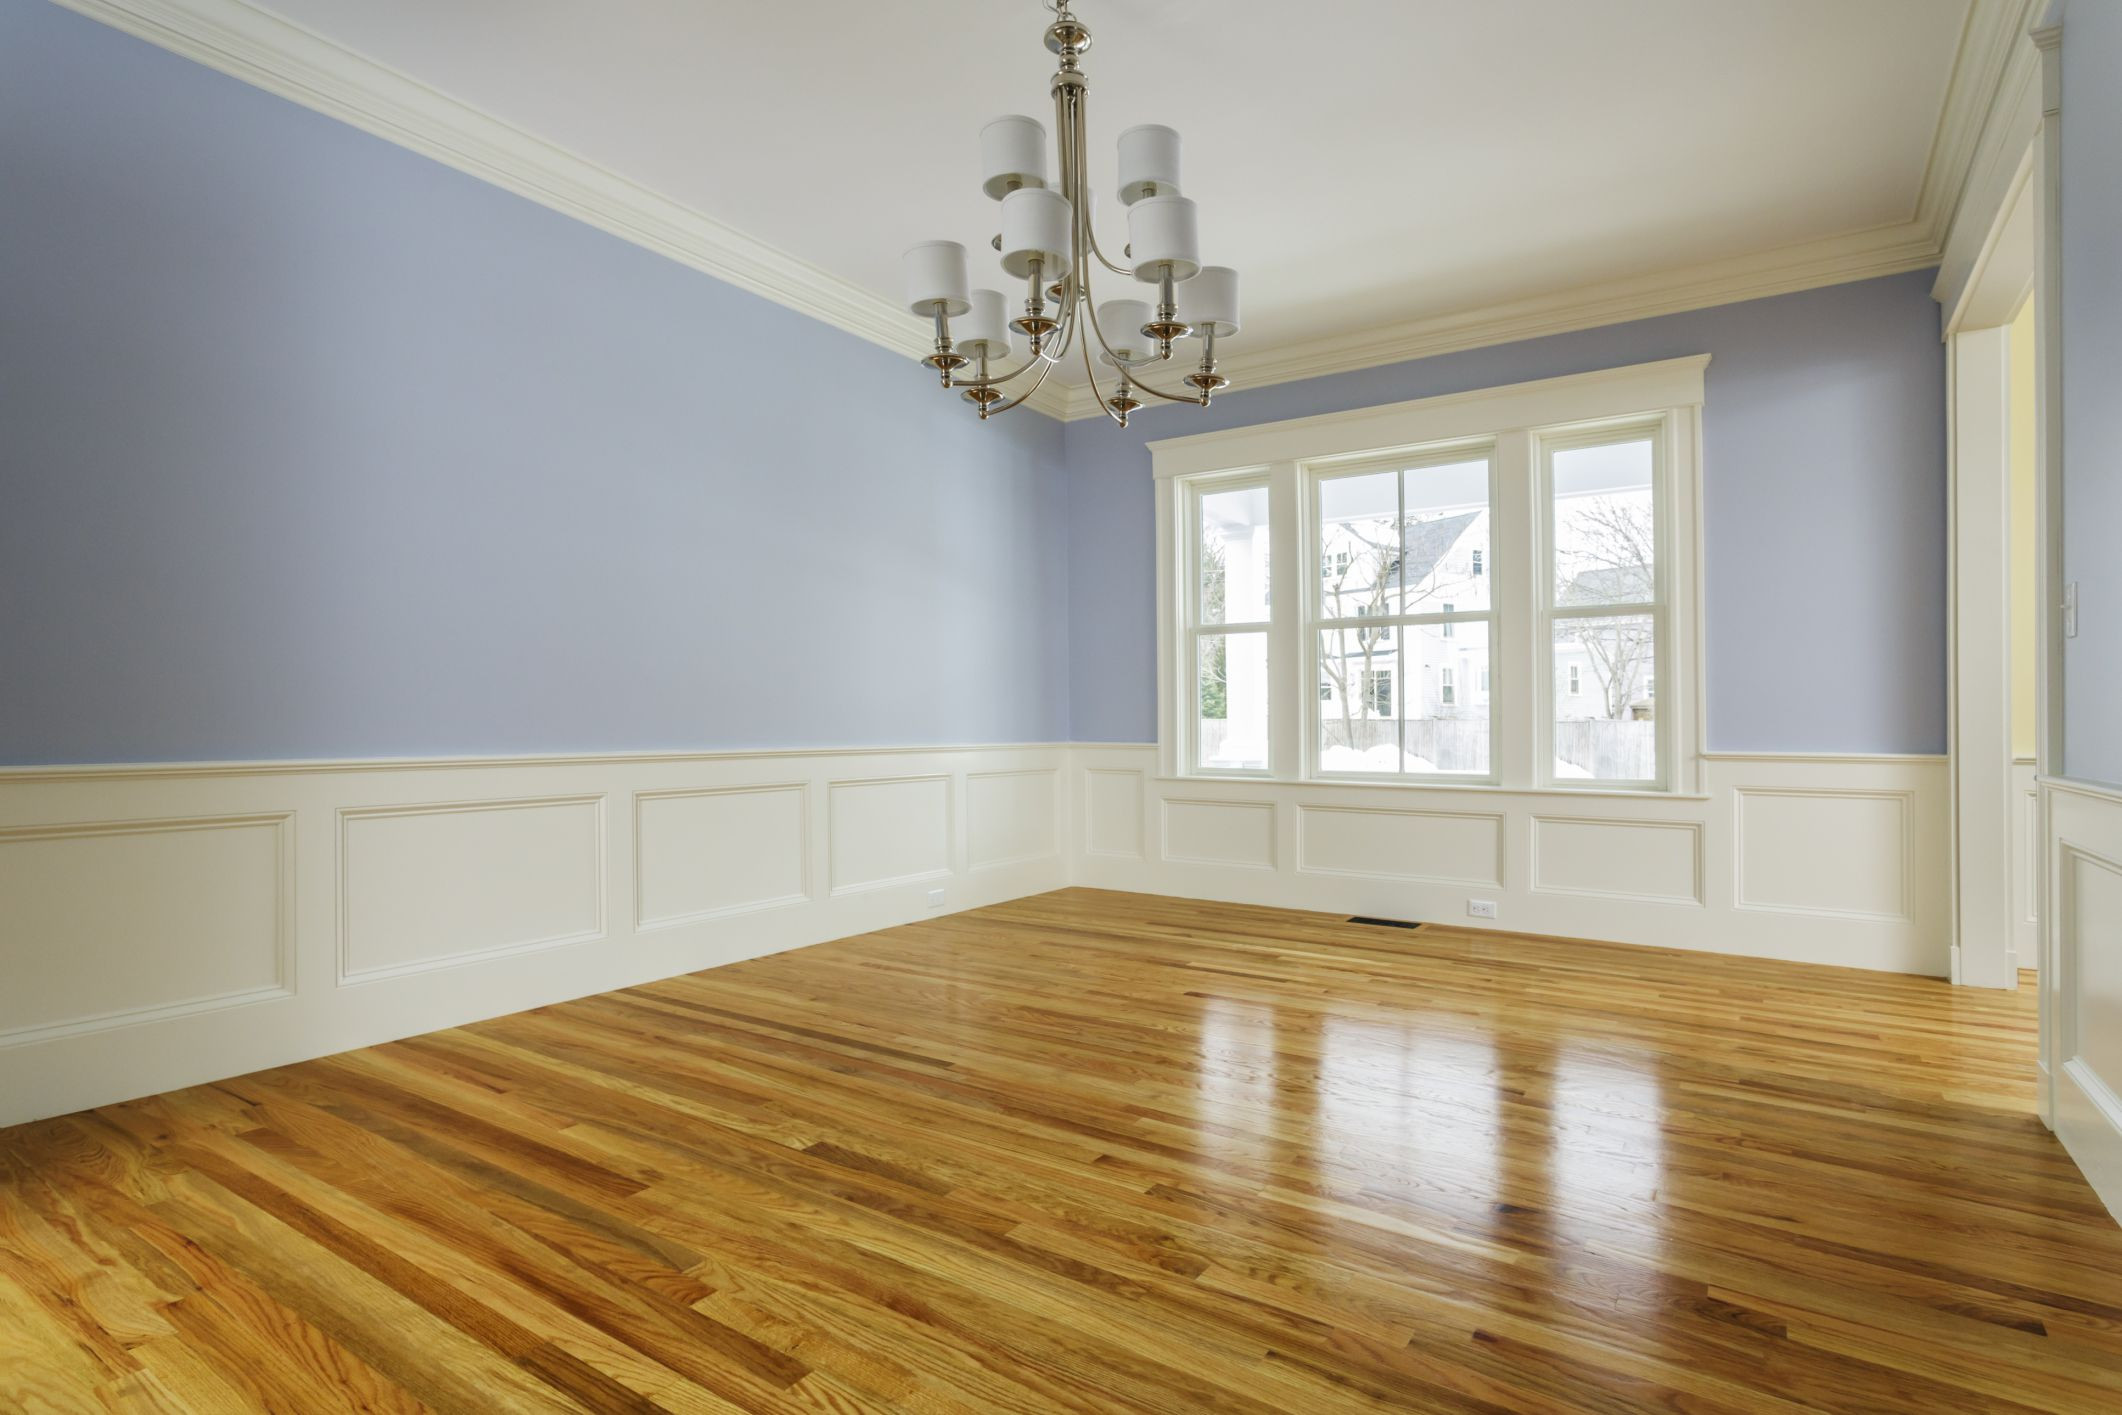 10 Famous Dark Hardwood Floors Decorating Ideas 2021 free download dark hardwood floors decorating ideas of how to make hardwood floors shiny in 168686572 56a4e87c3df78cf7728544a2